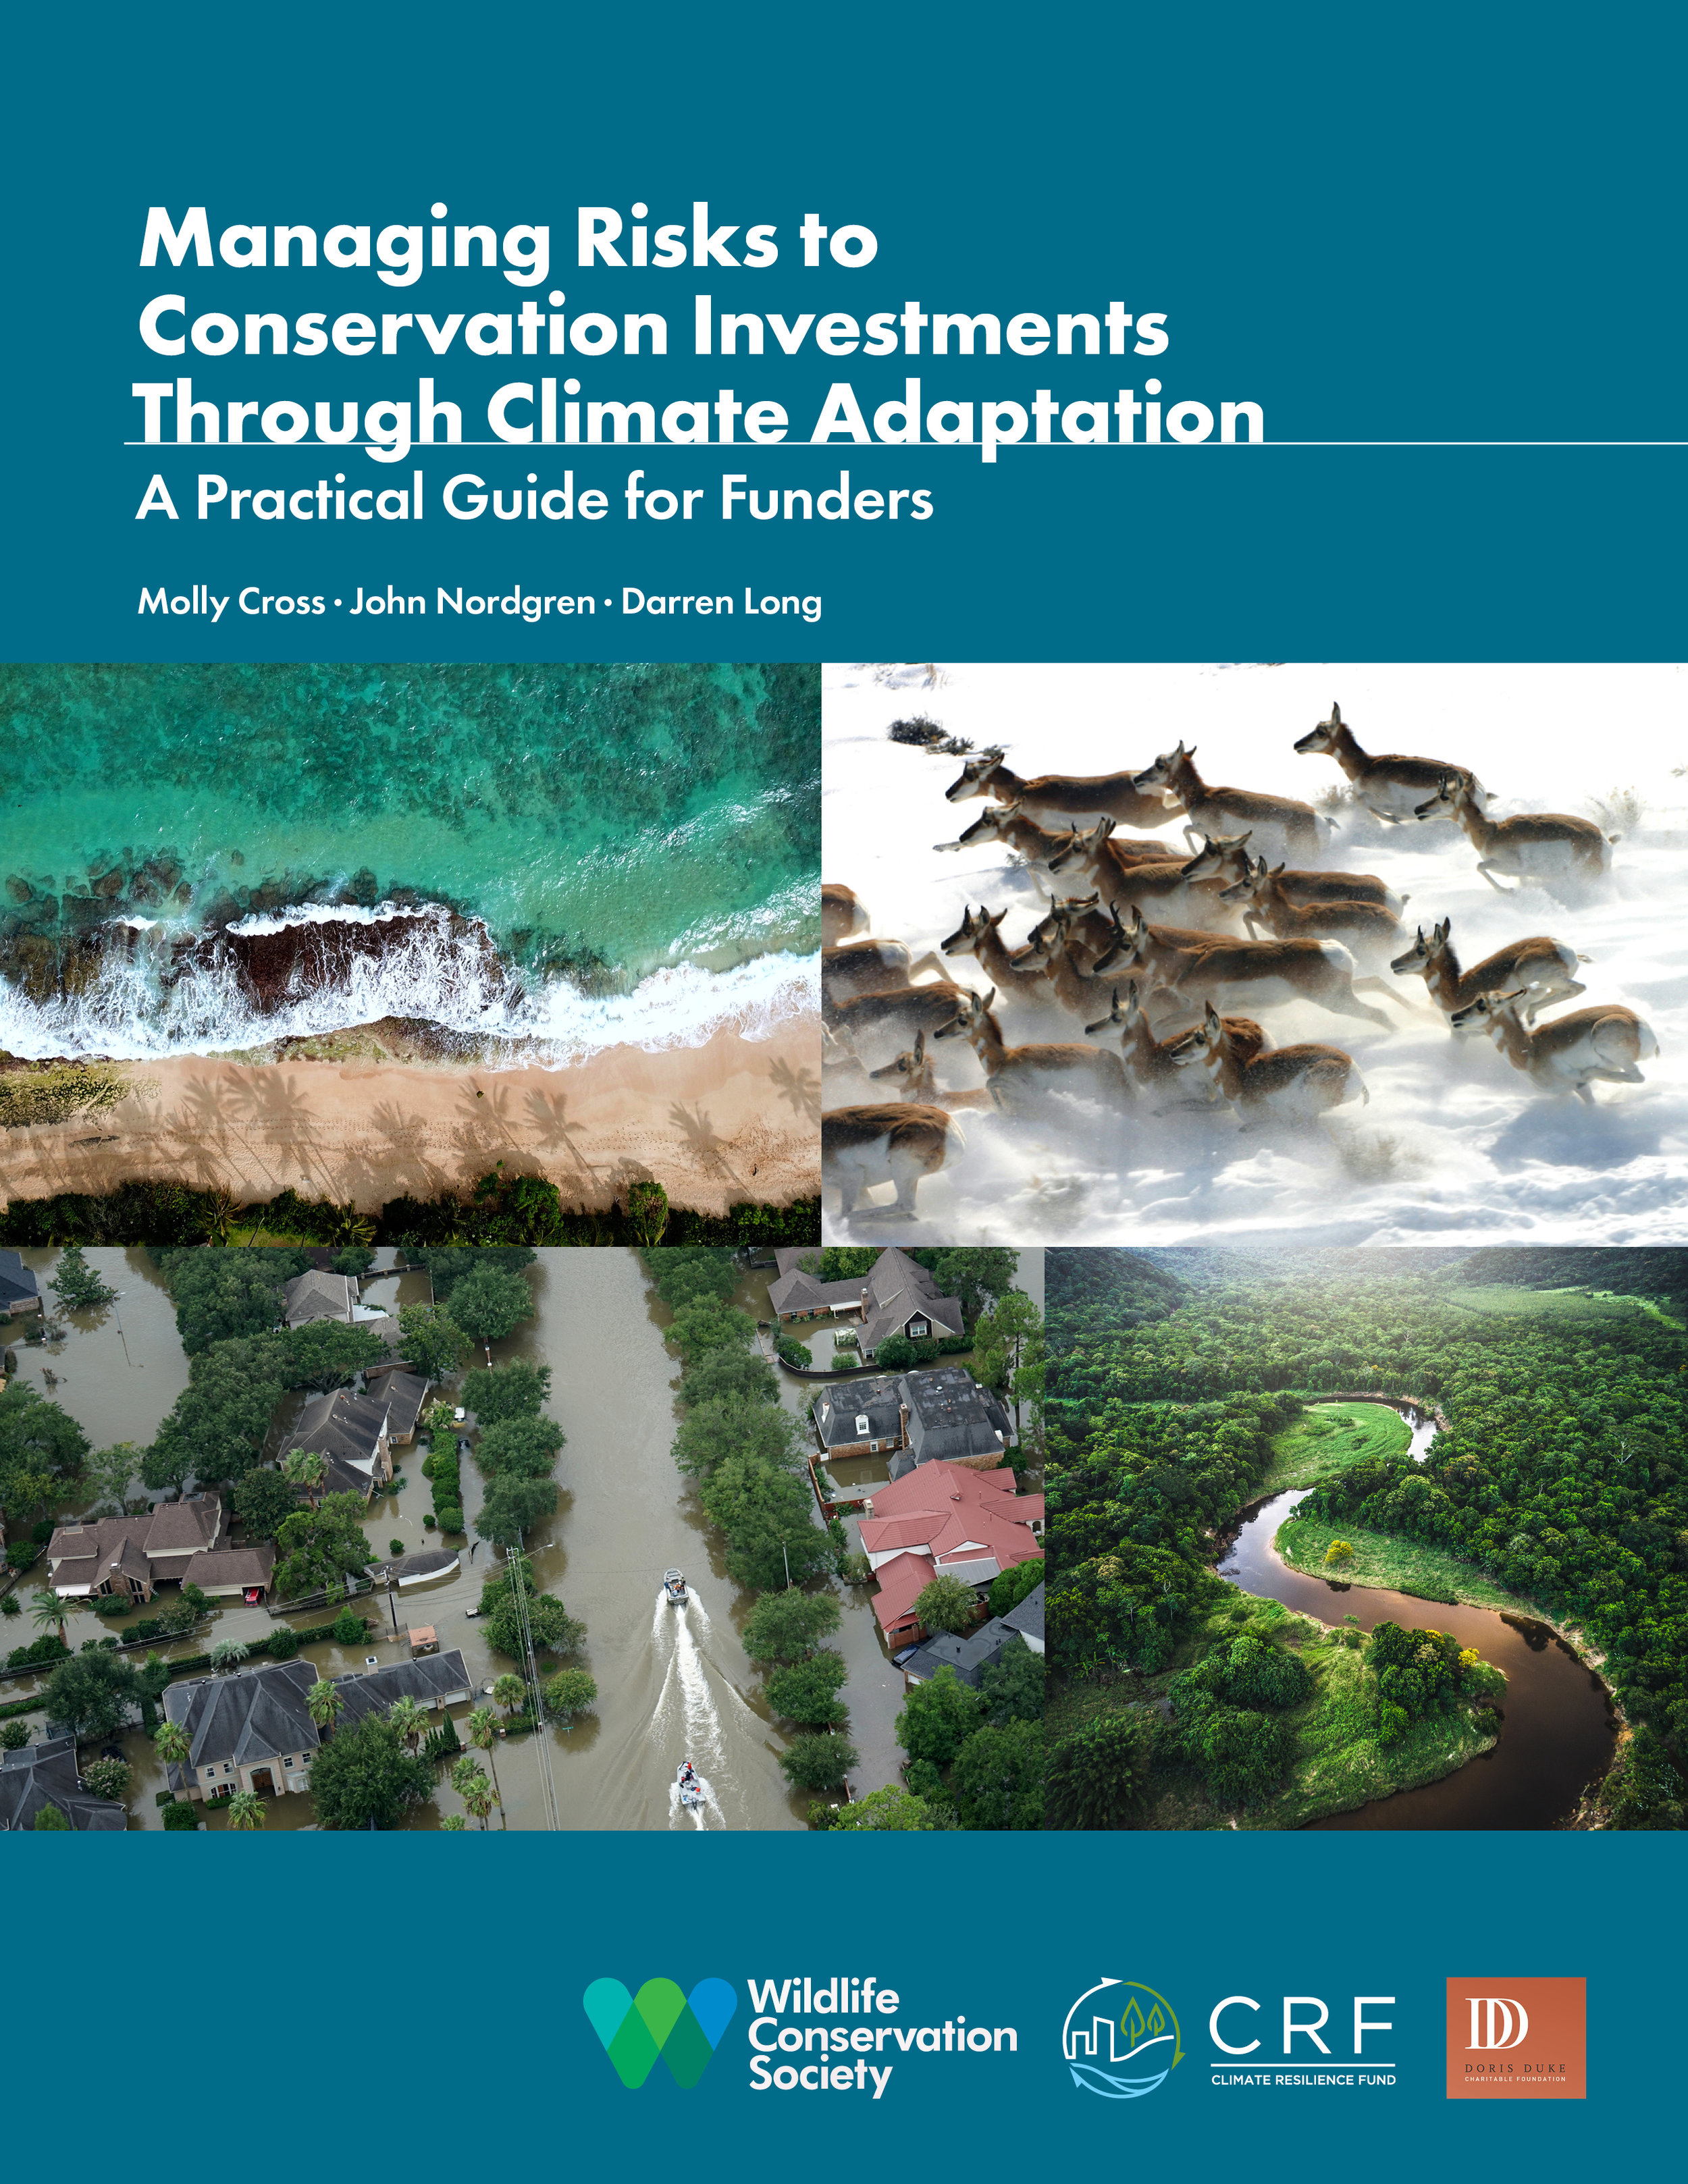 New Report for Conservation Funders! - As conservation funders, we need to insure that our financial investments remain durable and sustainable in the long-term given the impacts of climate change.Managing Risks to Conservation Investments Through Climate Adaptation is a report written by funders for funders. The climate is changing, and so should your conservation investment strategies. Learn how to make climate-smart grants and build the capacity of grantees in a changing world.